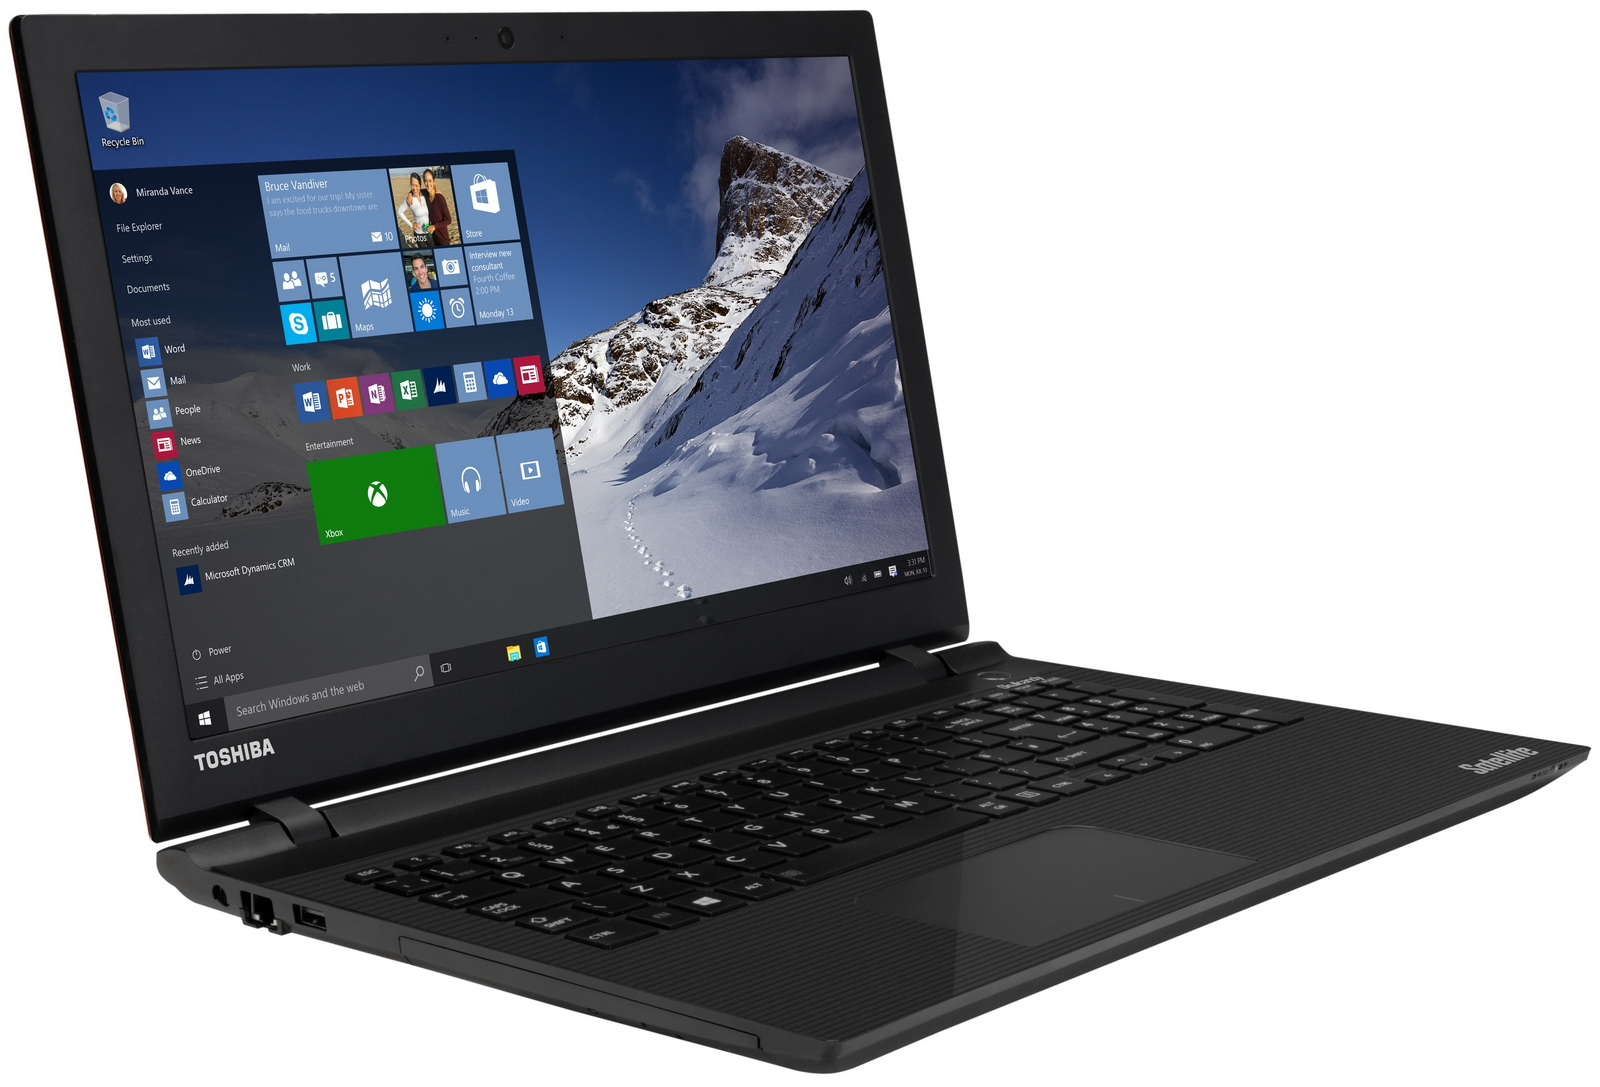 Toshiba Satellite L50 C Now Available With Wide Color